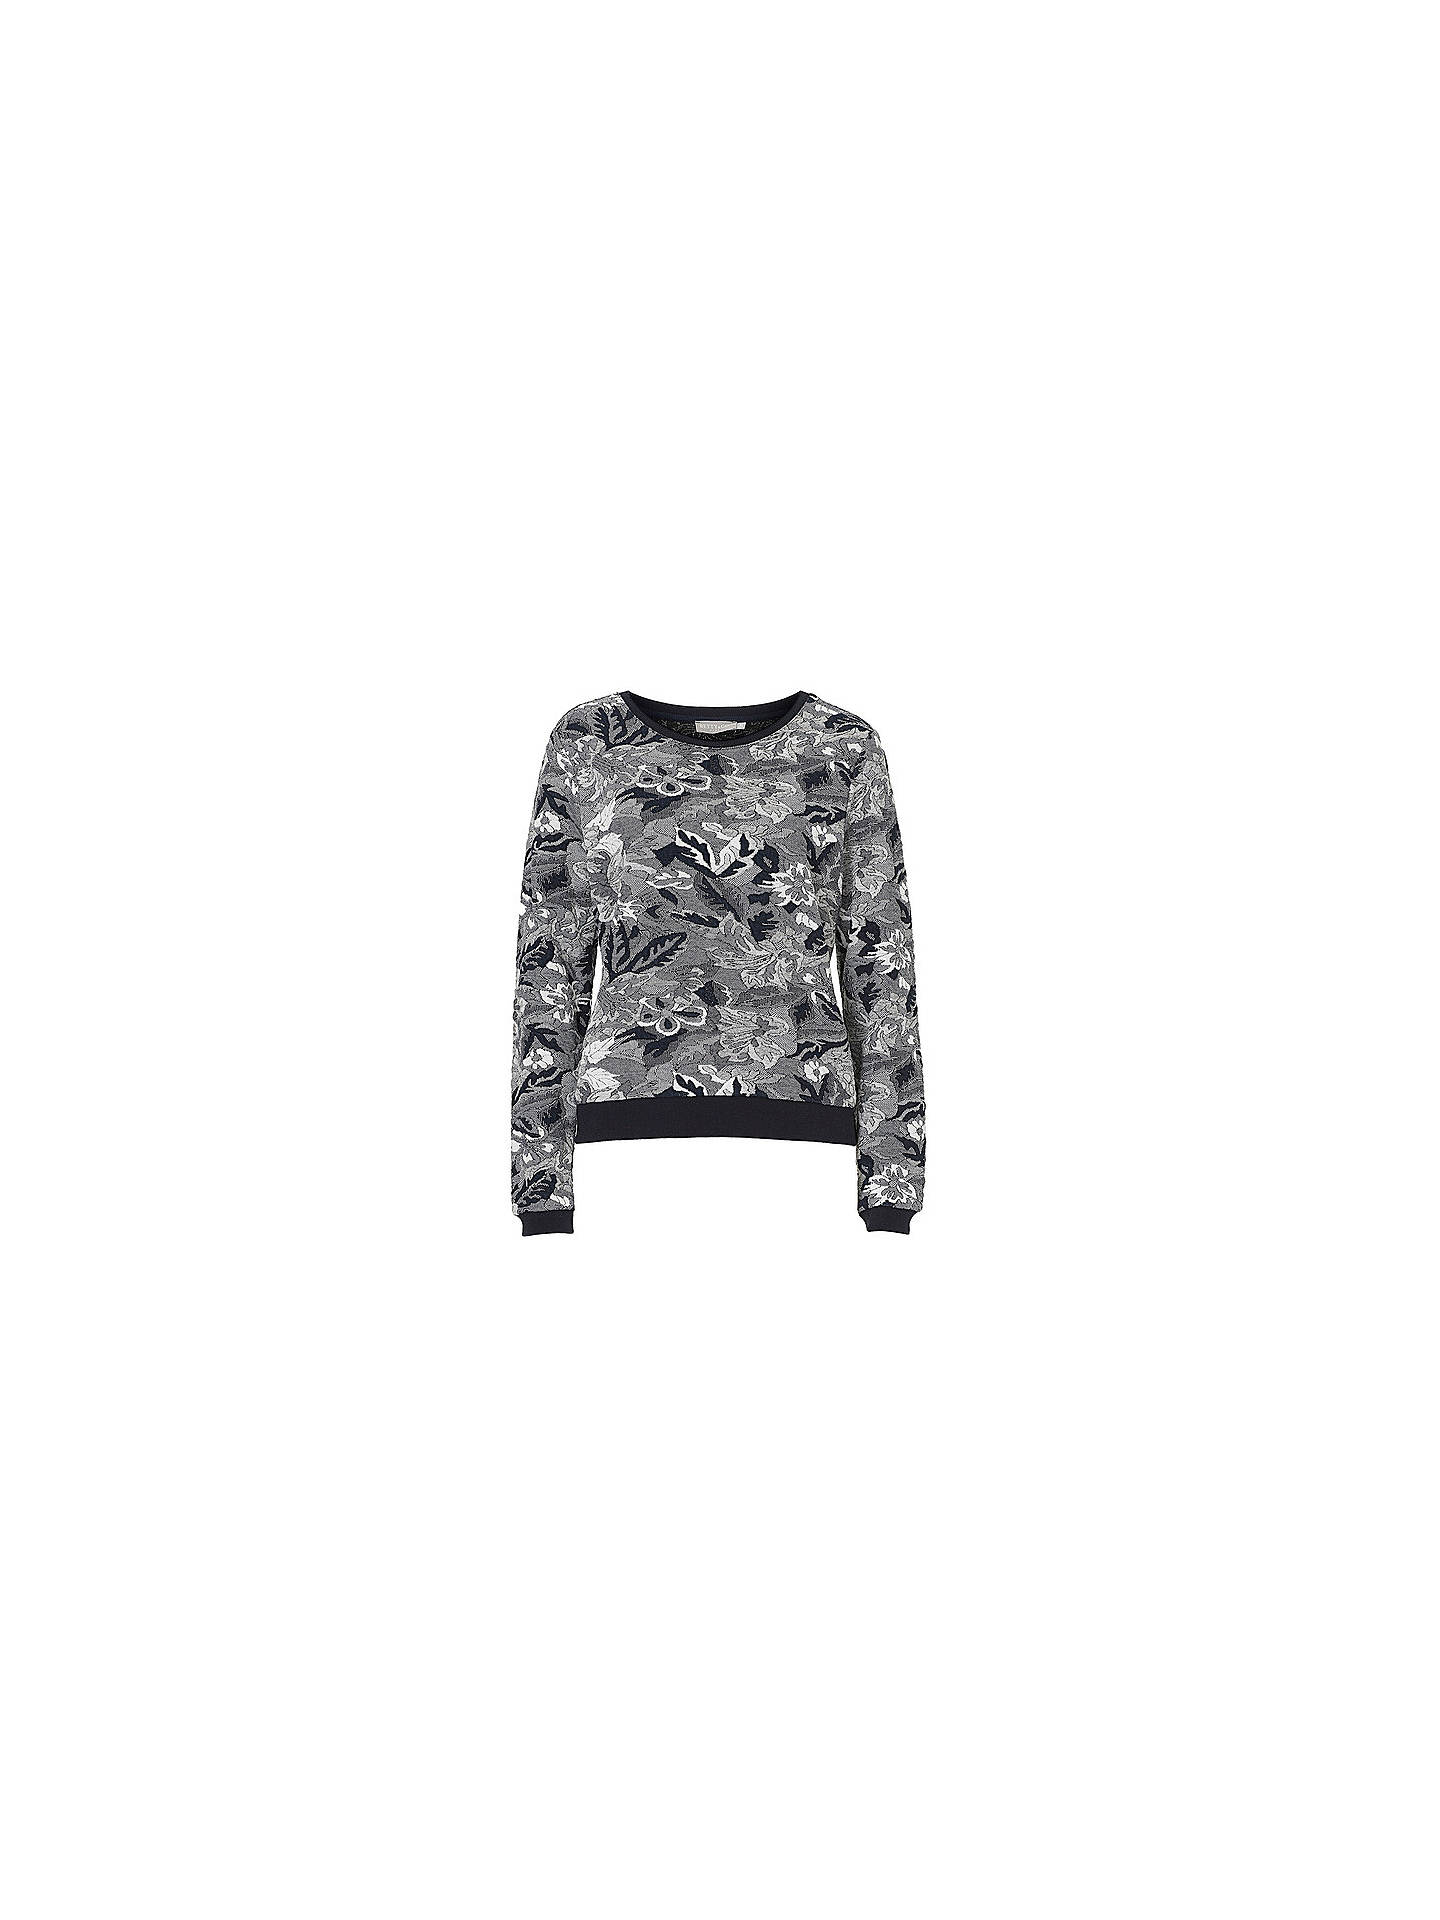 BuyBetty & Co. Tapestry Jumper, Dark Blue/Grey, 10 Online at johnlewis.com